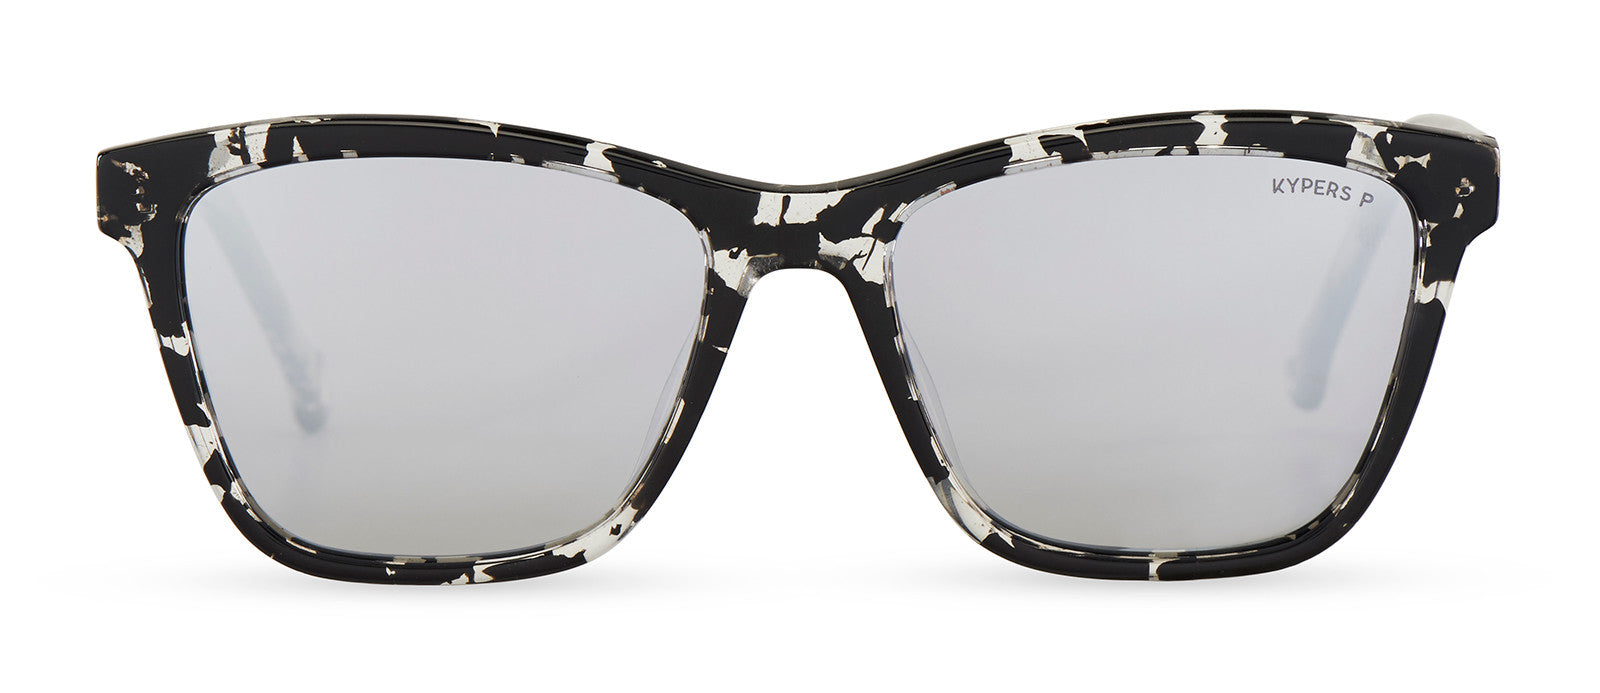 KYPERS sunglasses model RENÉ RE001 with black & crystal demy frame and gradient grey mirror lens